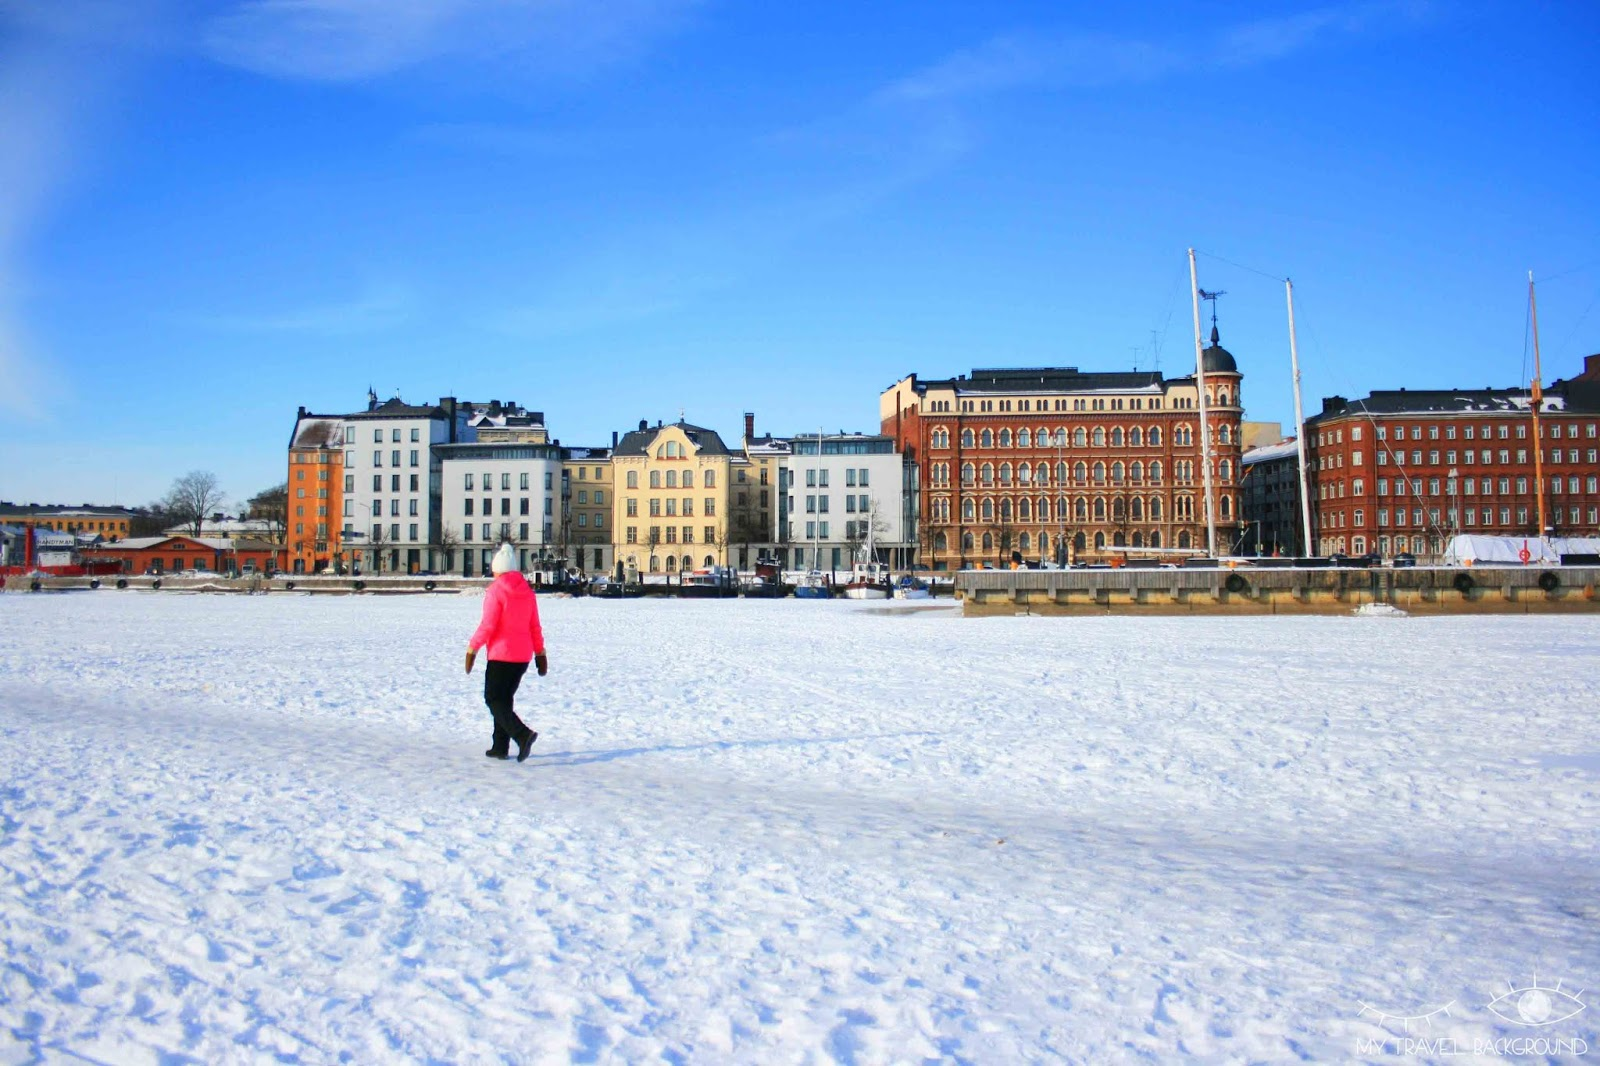 My Travel Background : carte postale de Finlande - Helsinki